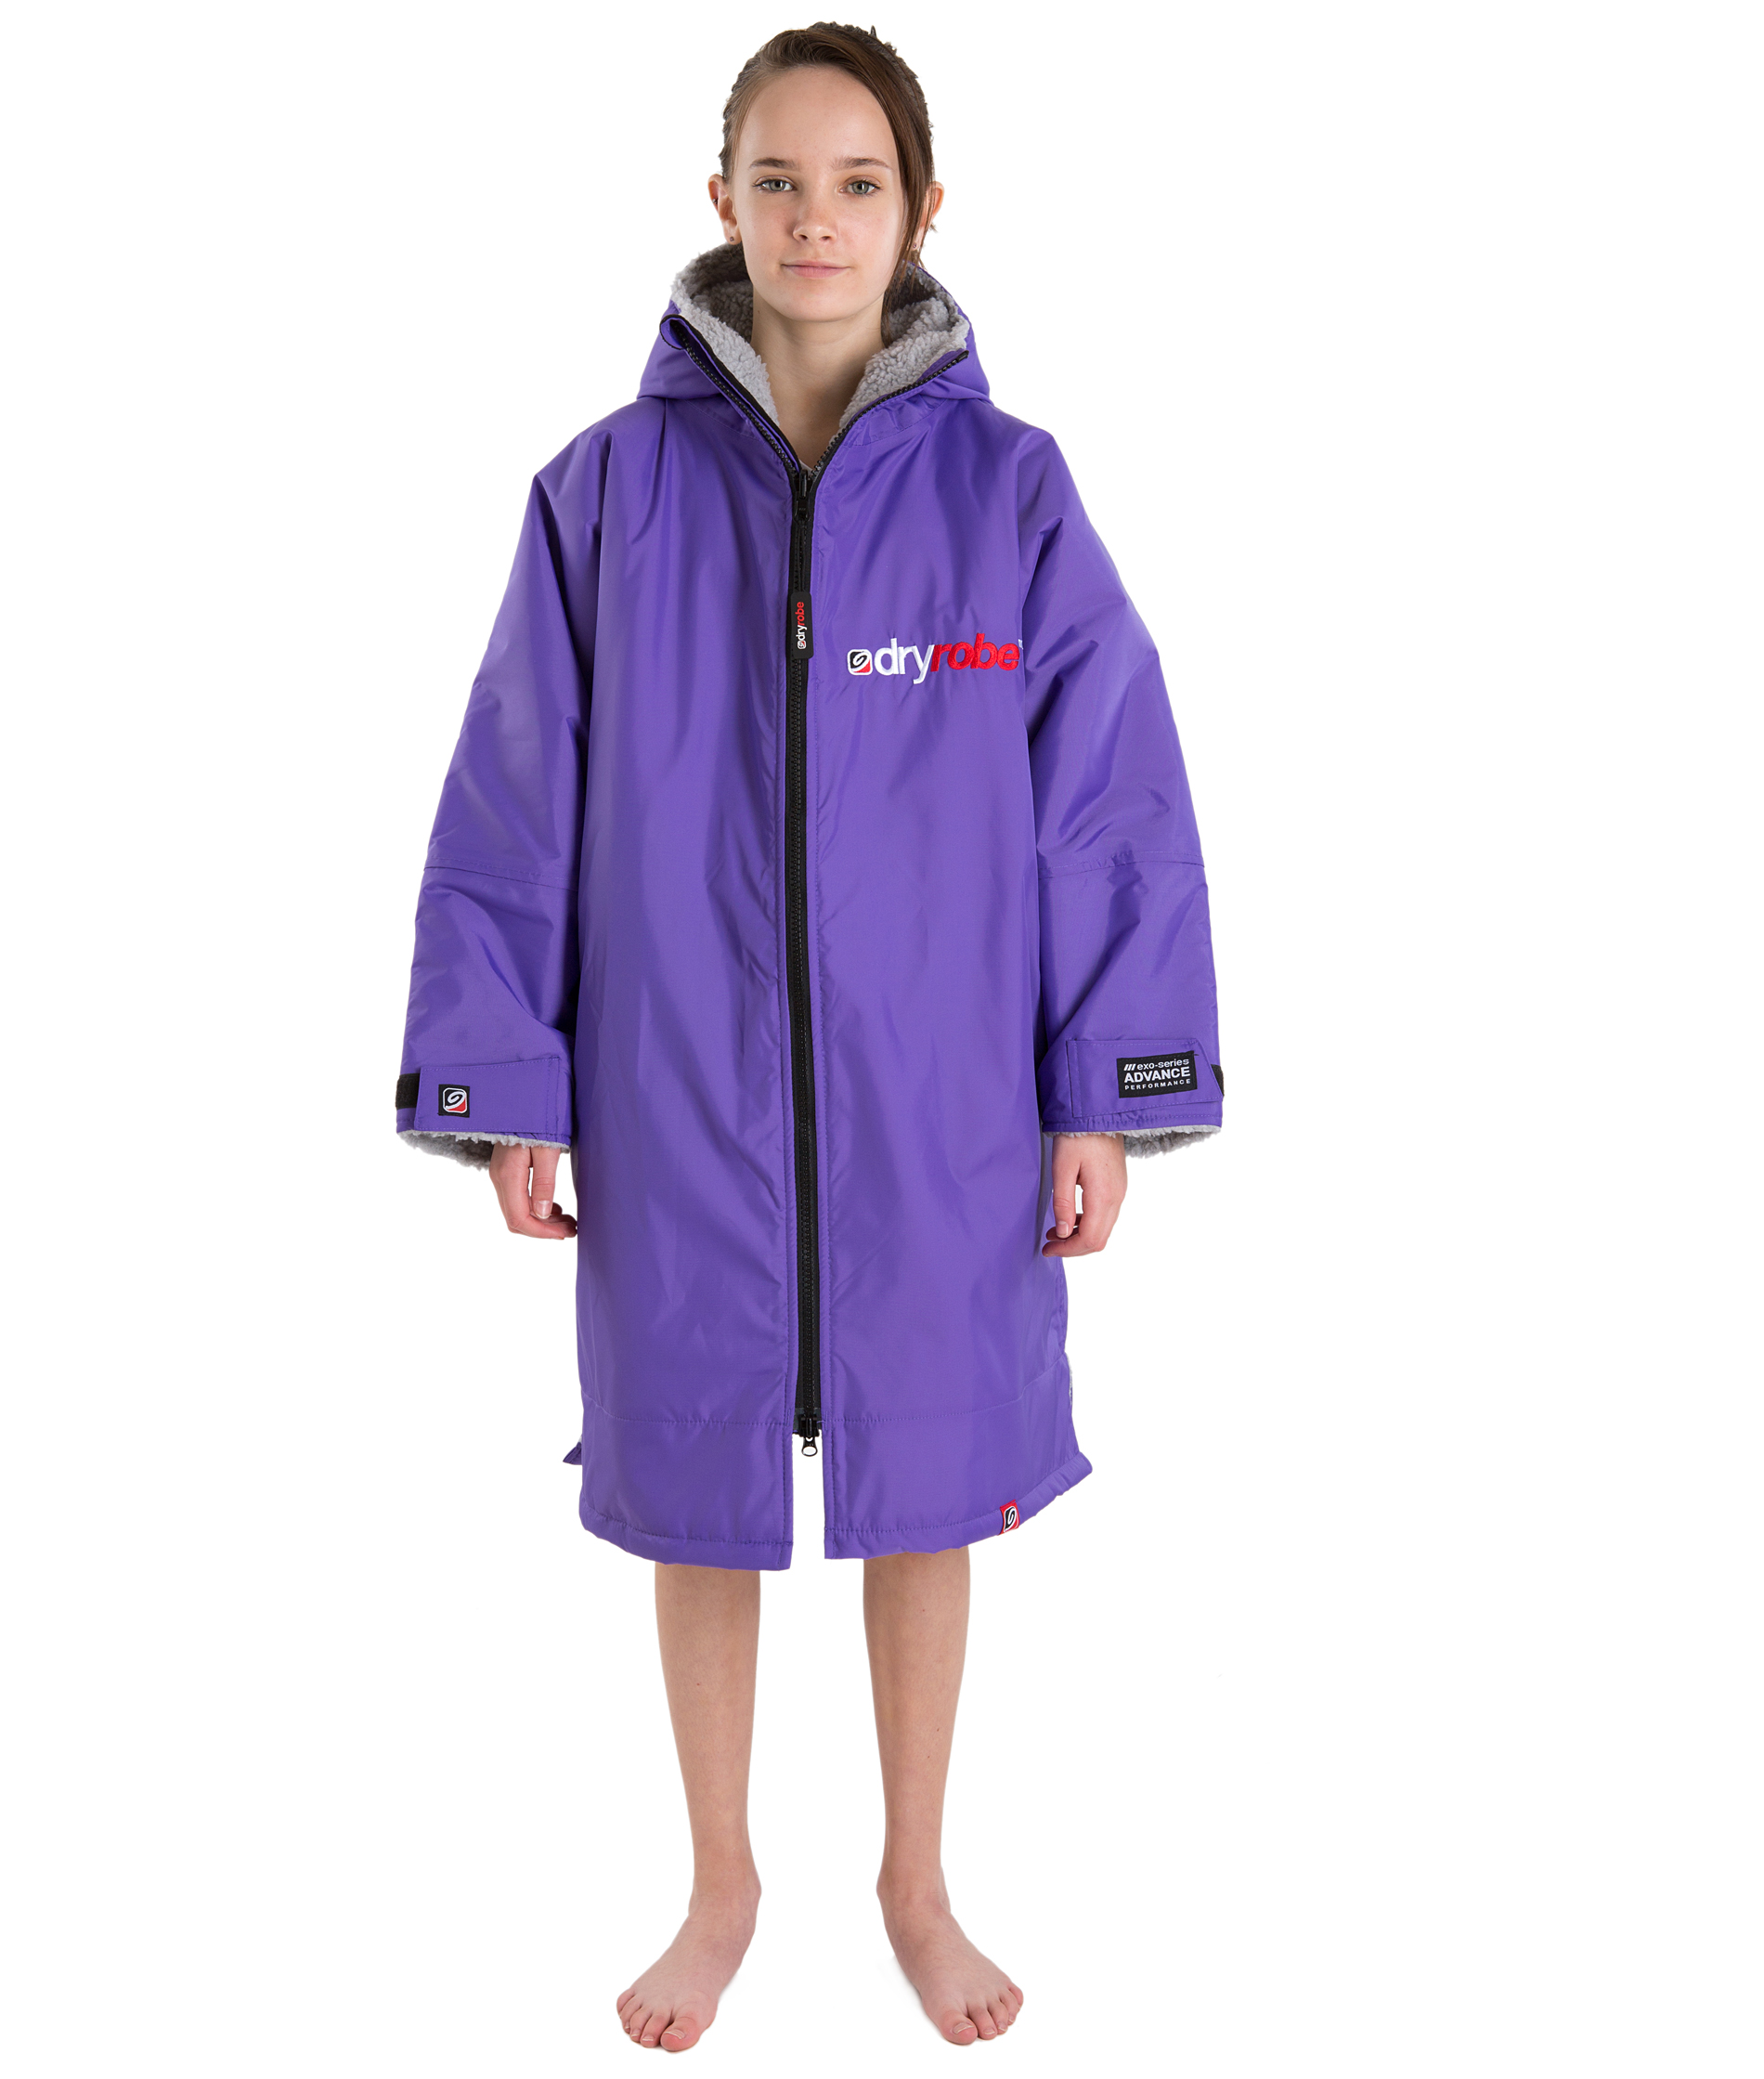 Dryrobe Advance Long Sleeve Purple/Grey - Small